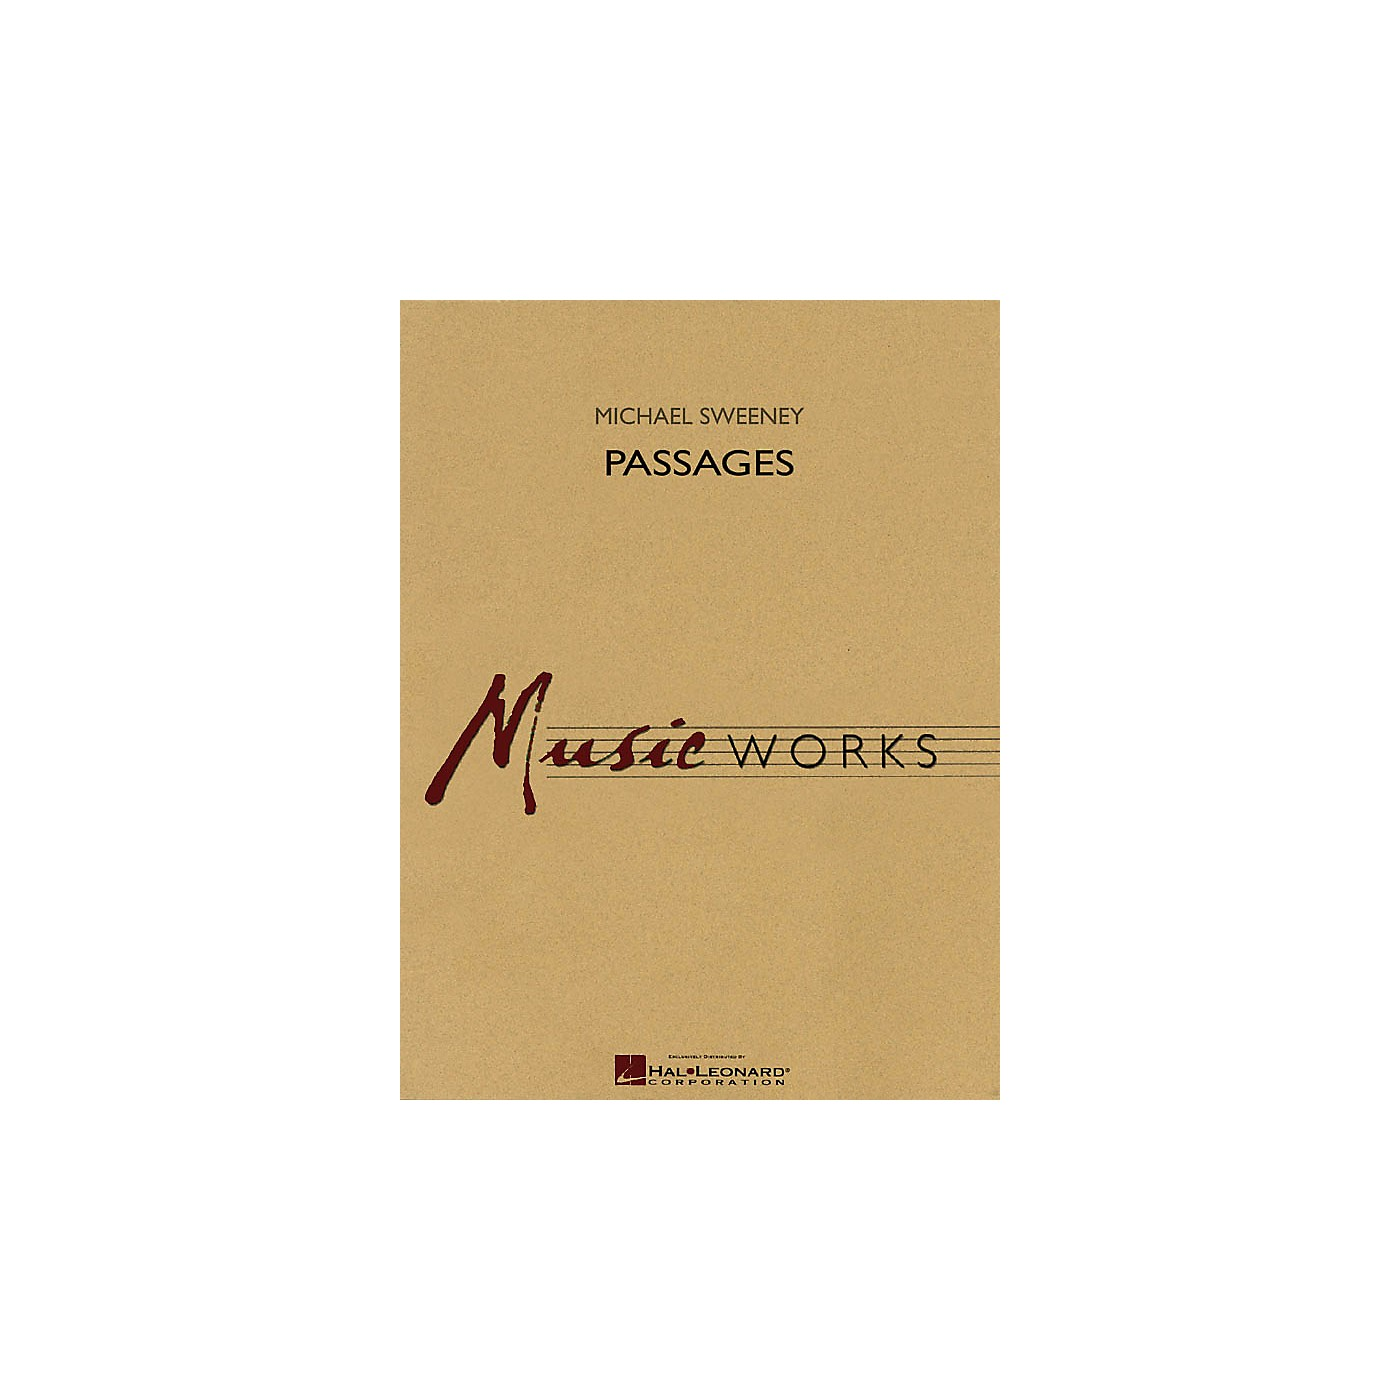 Hal Leonard Passages Concert Band Level 4 Composed by Michael Sweeney thumbnail